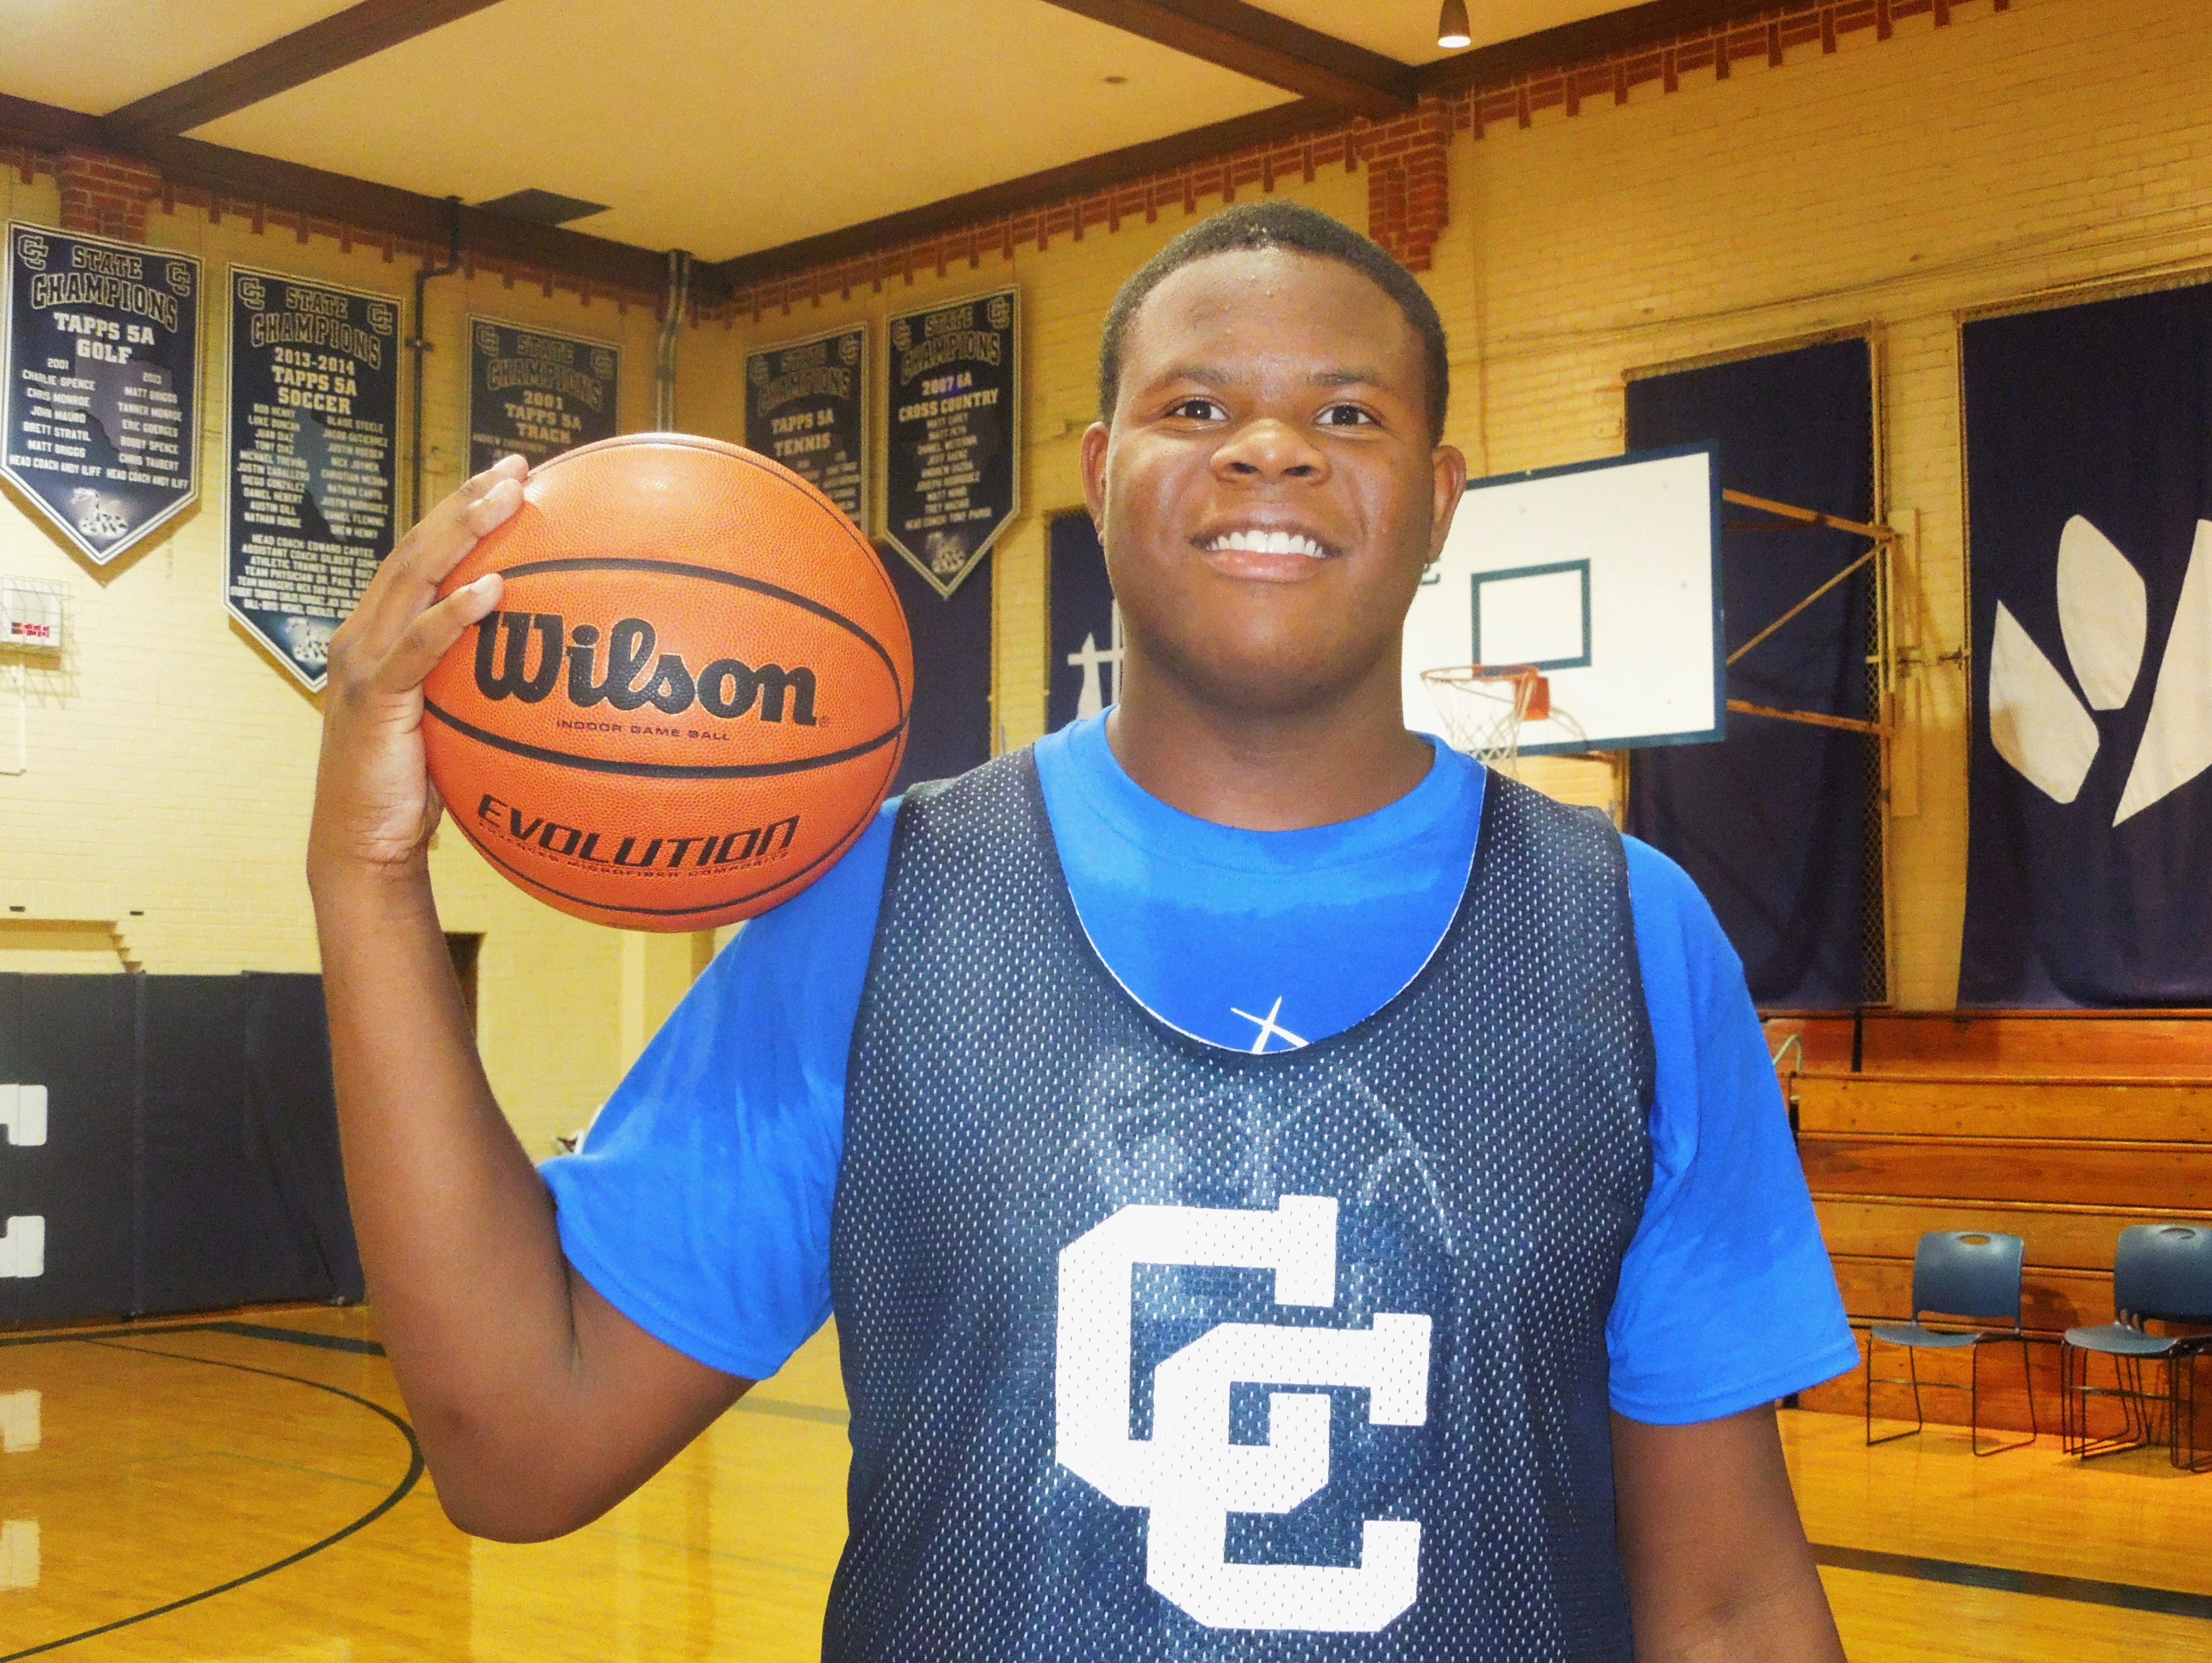 Central Catholic forward/center Tony Lewis will sign a national letter of intent with Santa Clara at 4:15 p.m. Wednesday at Central Catholic.